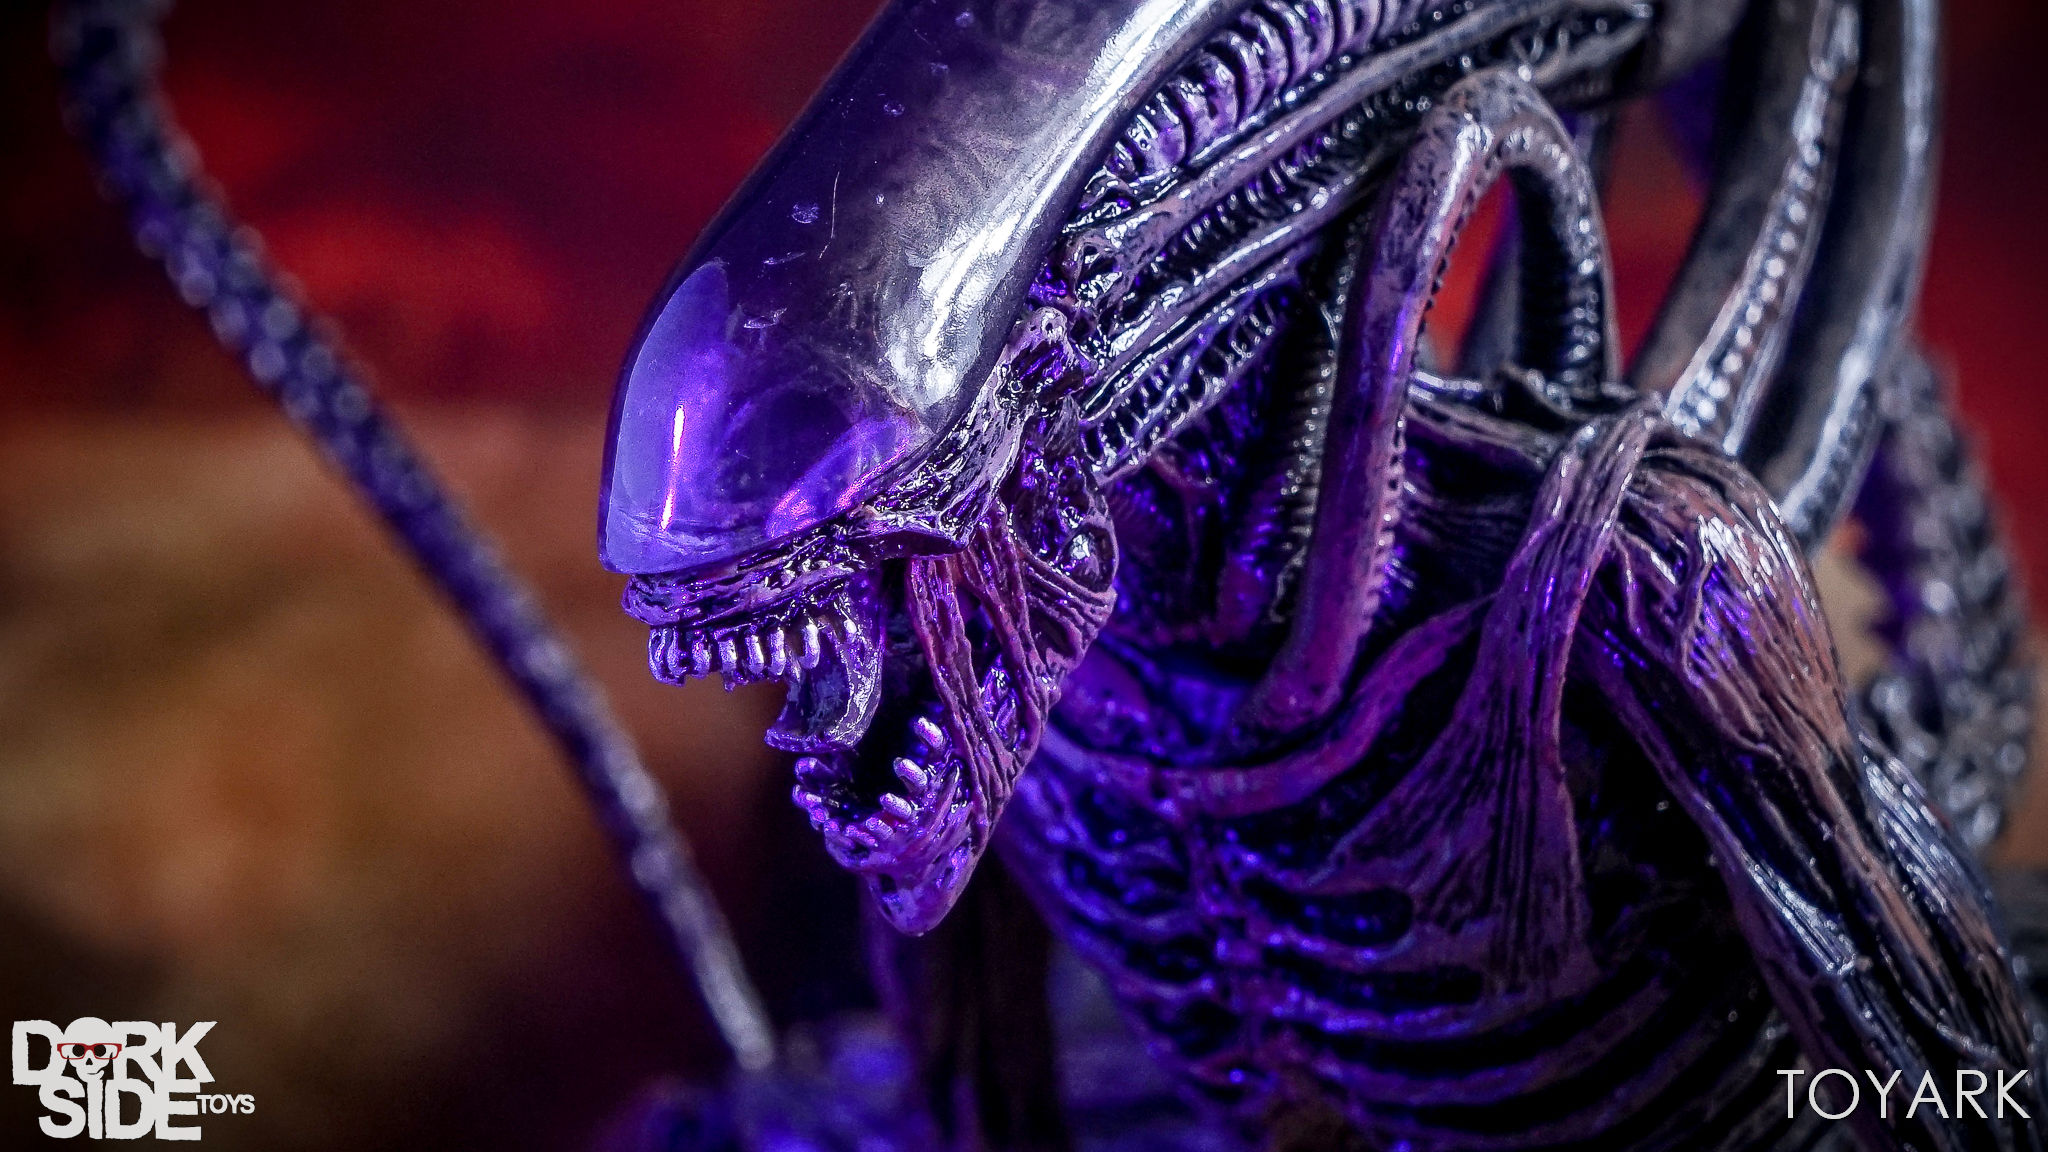 http://news.toyark.com/wp-content/uploads/sites/4/2017/08/NECA-Alien-Covenant-Figures-054.jpg